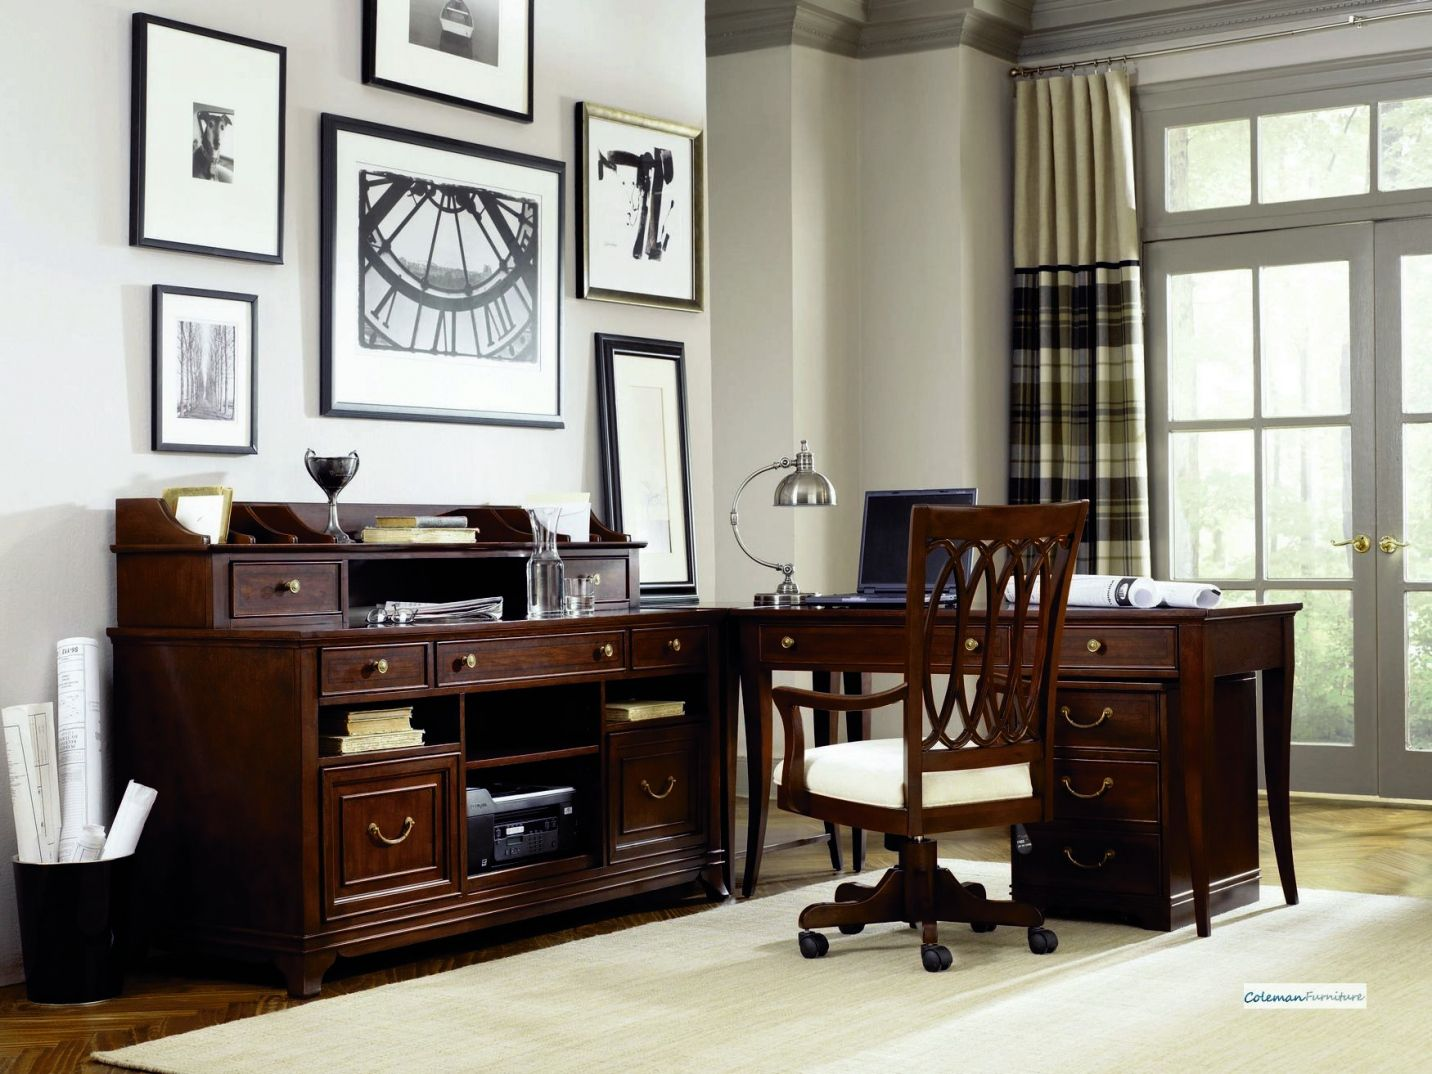 contemporary home office furniture uk. Office Desk Pottery Barn - Modern Home Furniture Check More At Http://michael-malarkey.com/office-desk-pottery-barn/ Contemporary Uk N